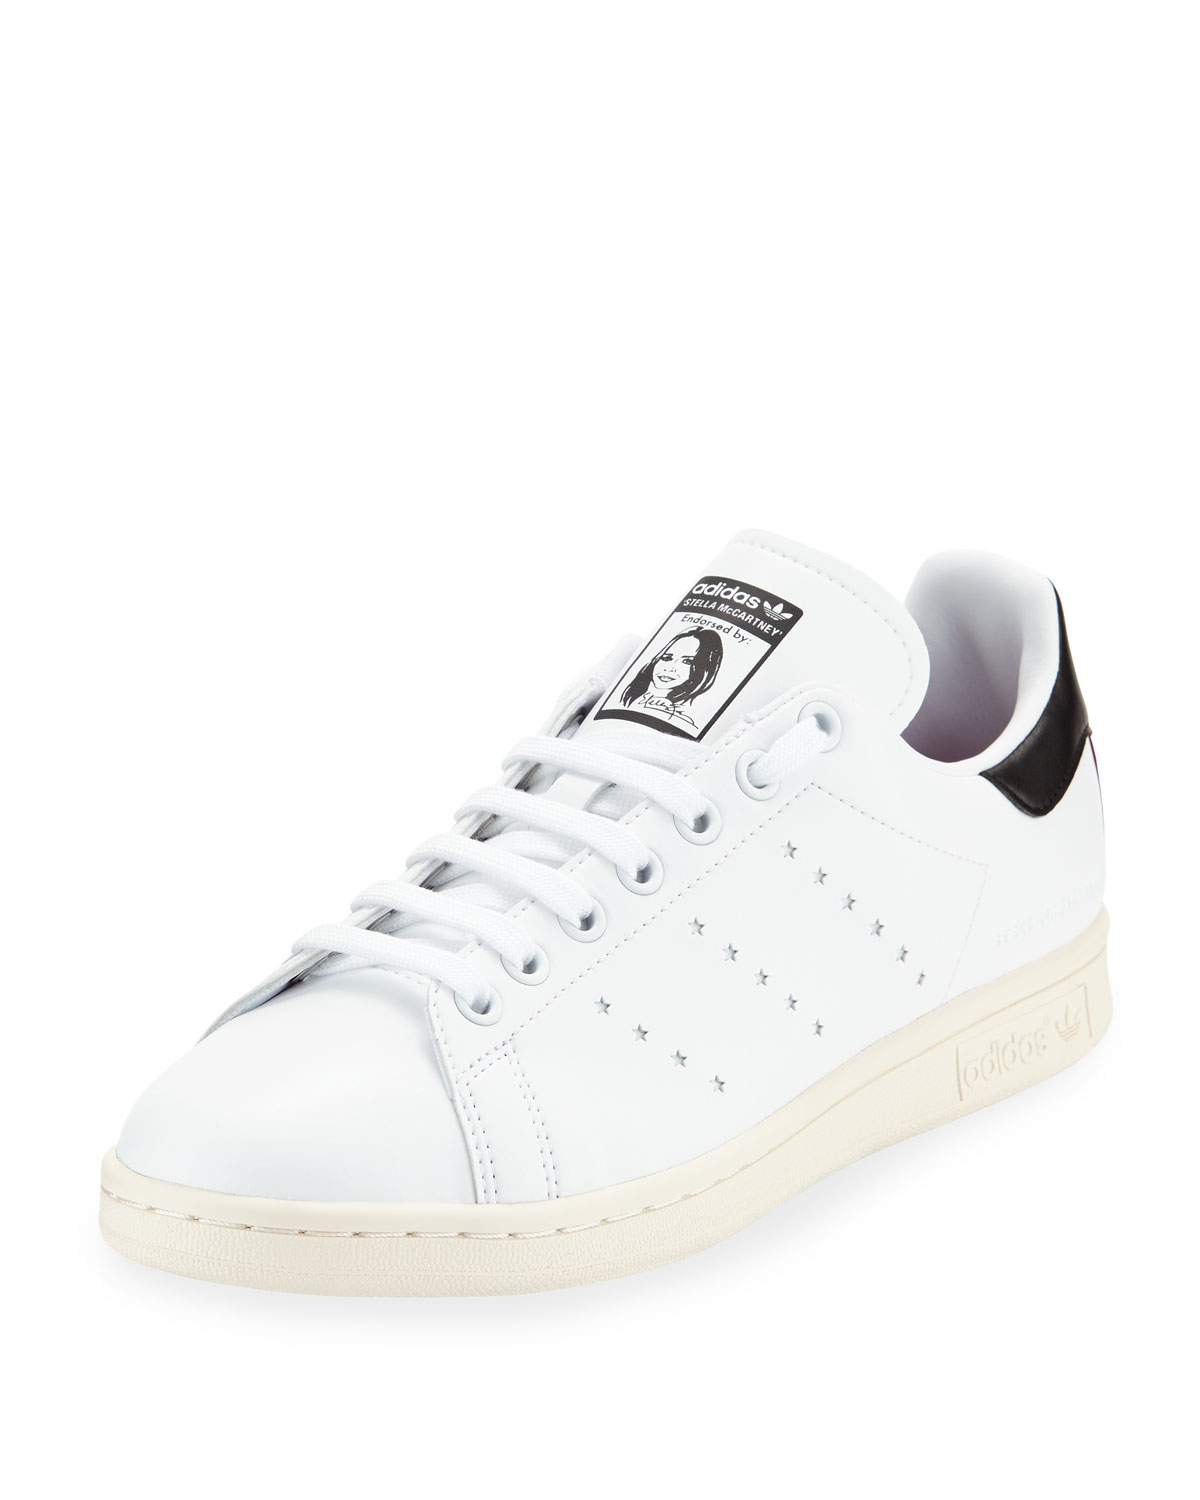 Stella McCartney Stan Smith Collab Sneaker  fb79252f3